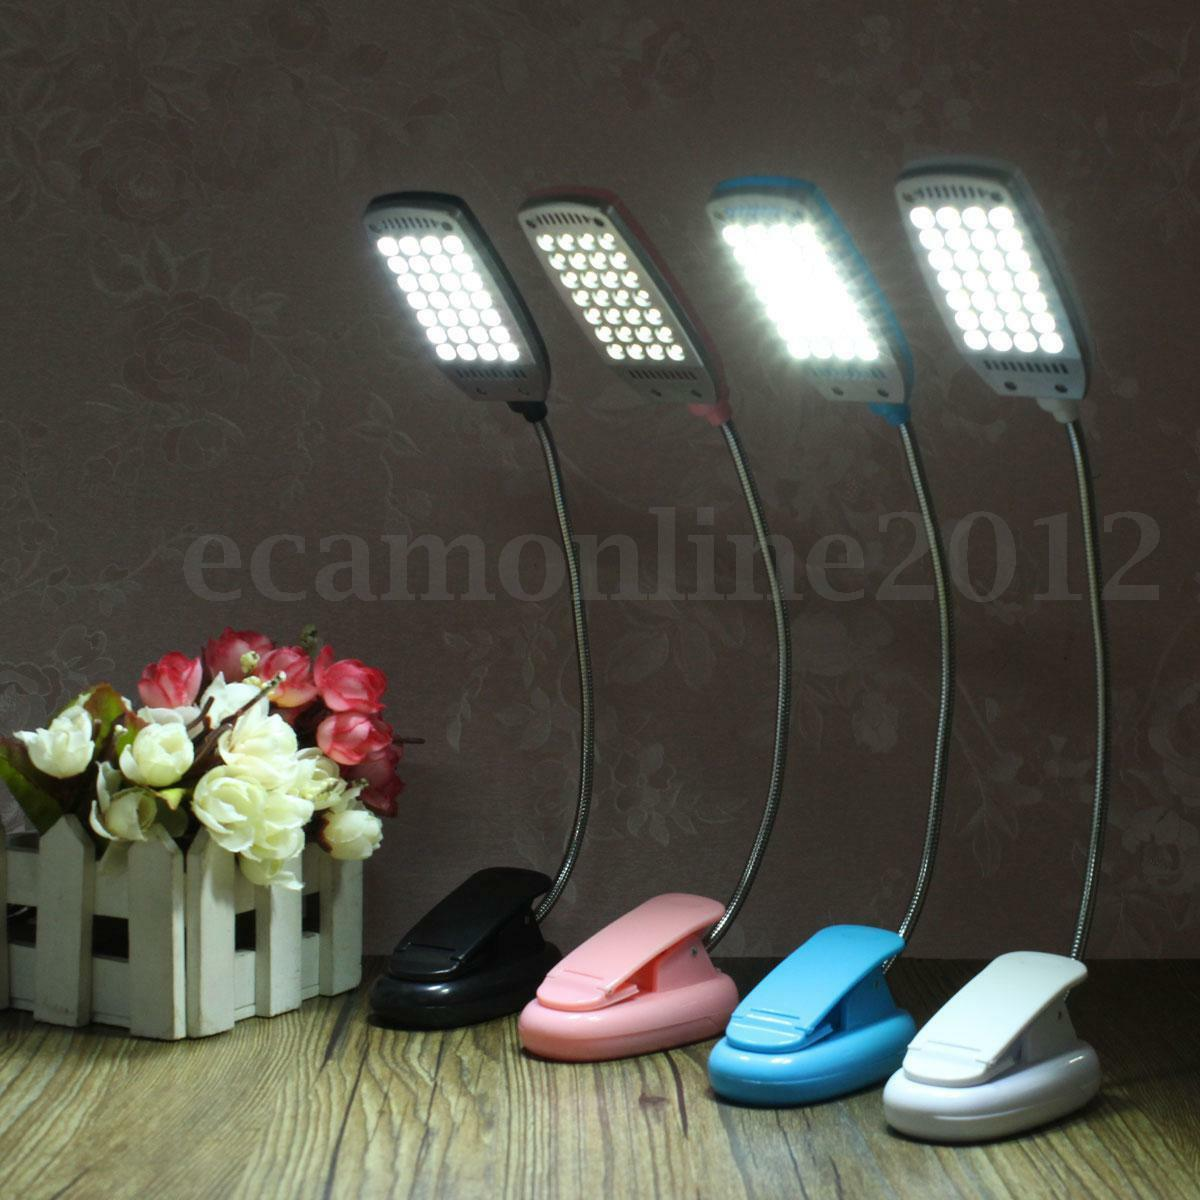 Flexible usb pile 28 led lampe de table bureau lit liseuse for Lampe de bureau a pile